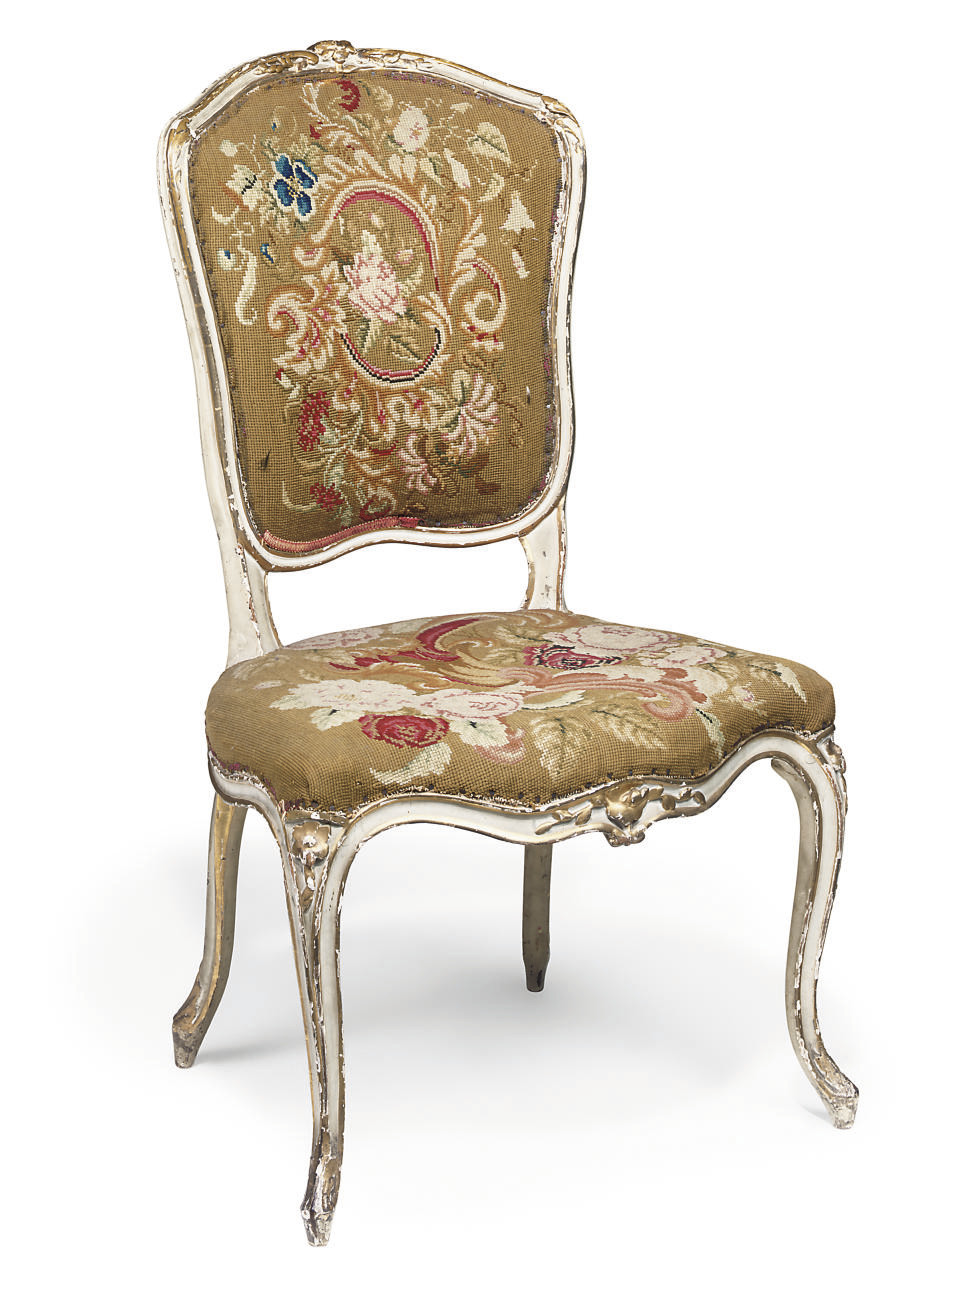 a louis xv grey painted and parcel gilt chaise en cabriolet by jean baptiste lebas mid 18th. Black Bedroom Furniture Sets. Home Design Ideas